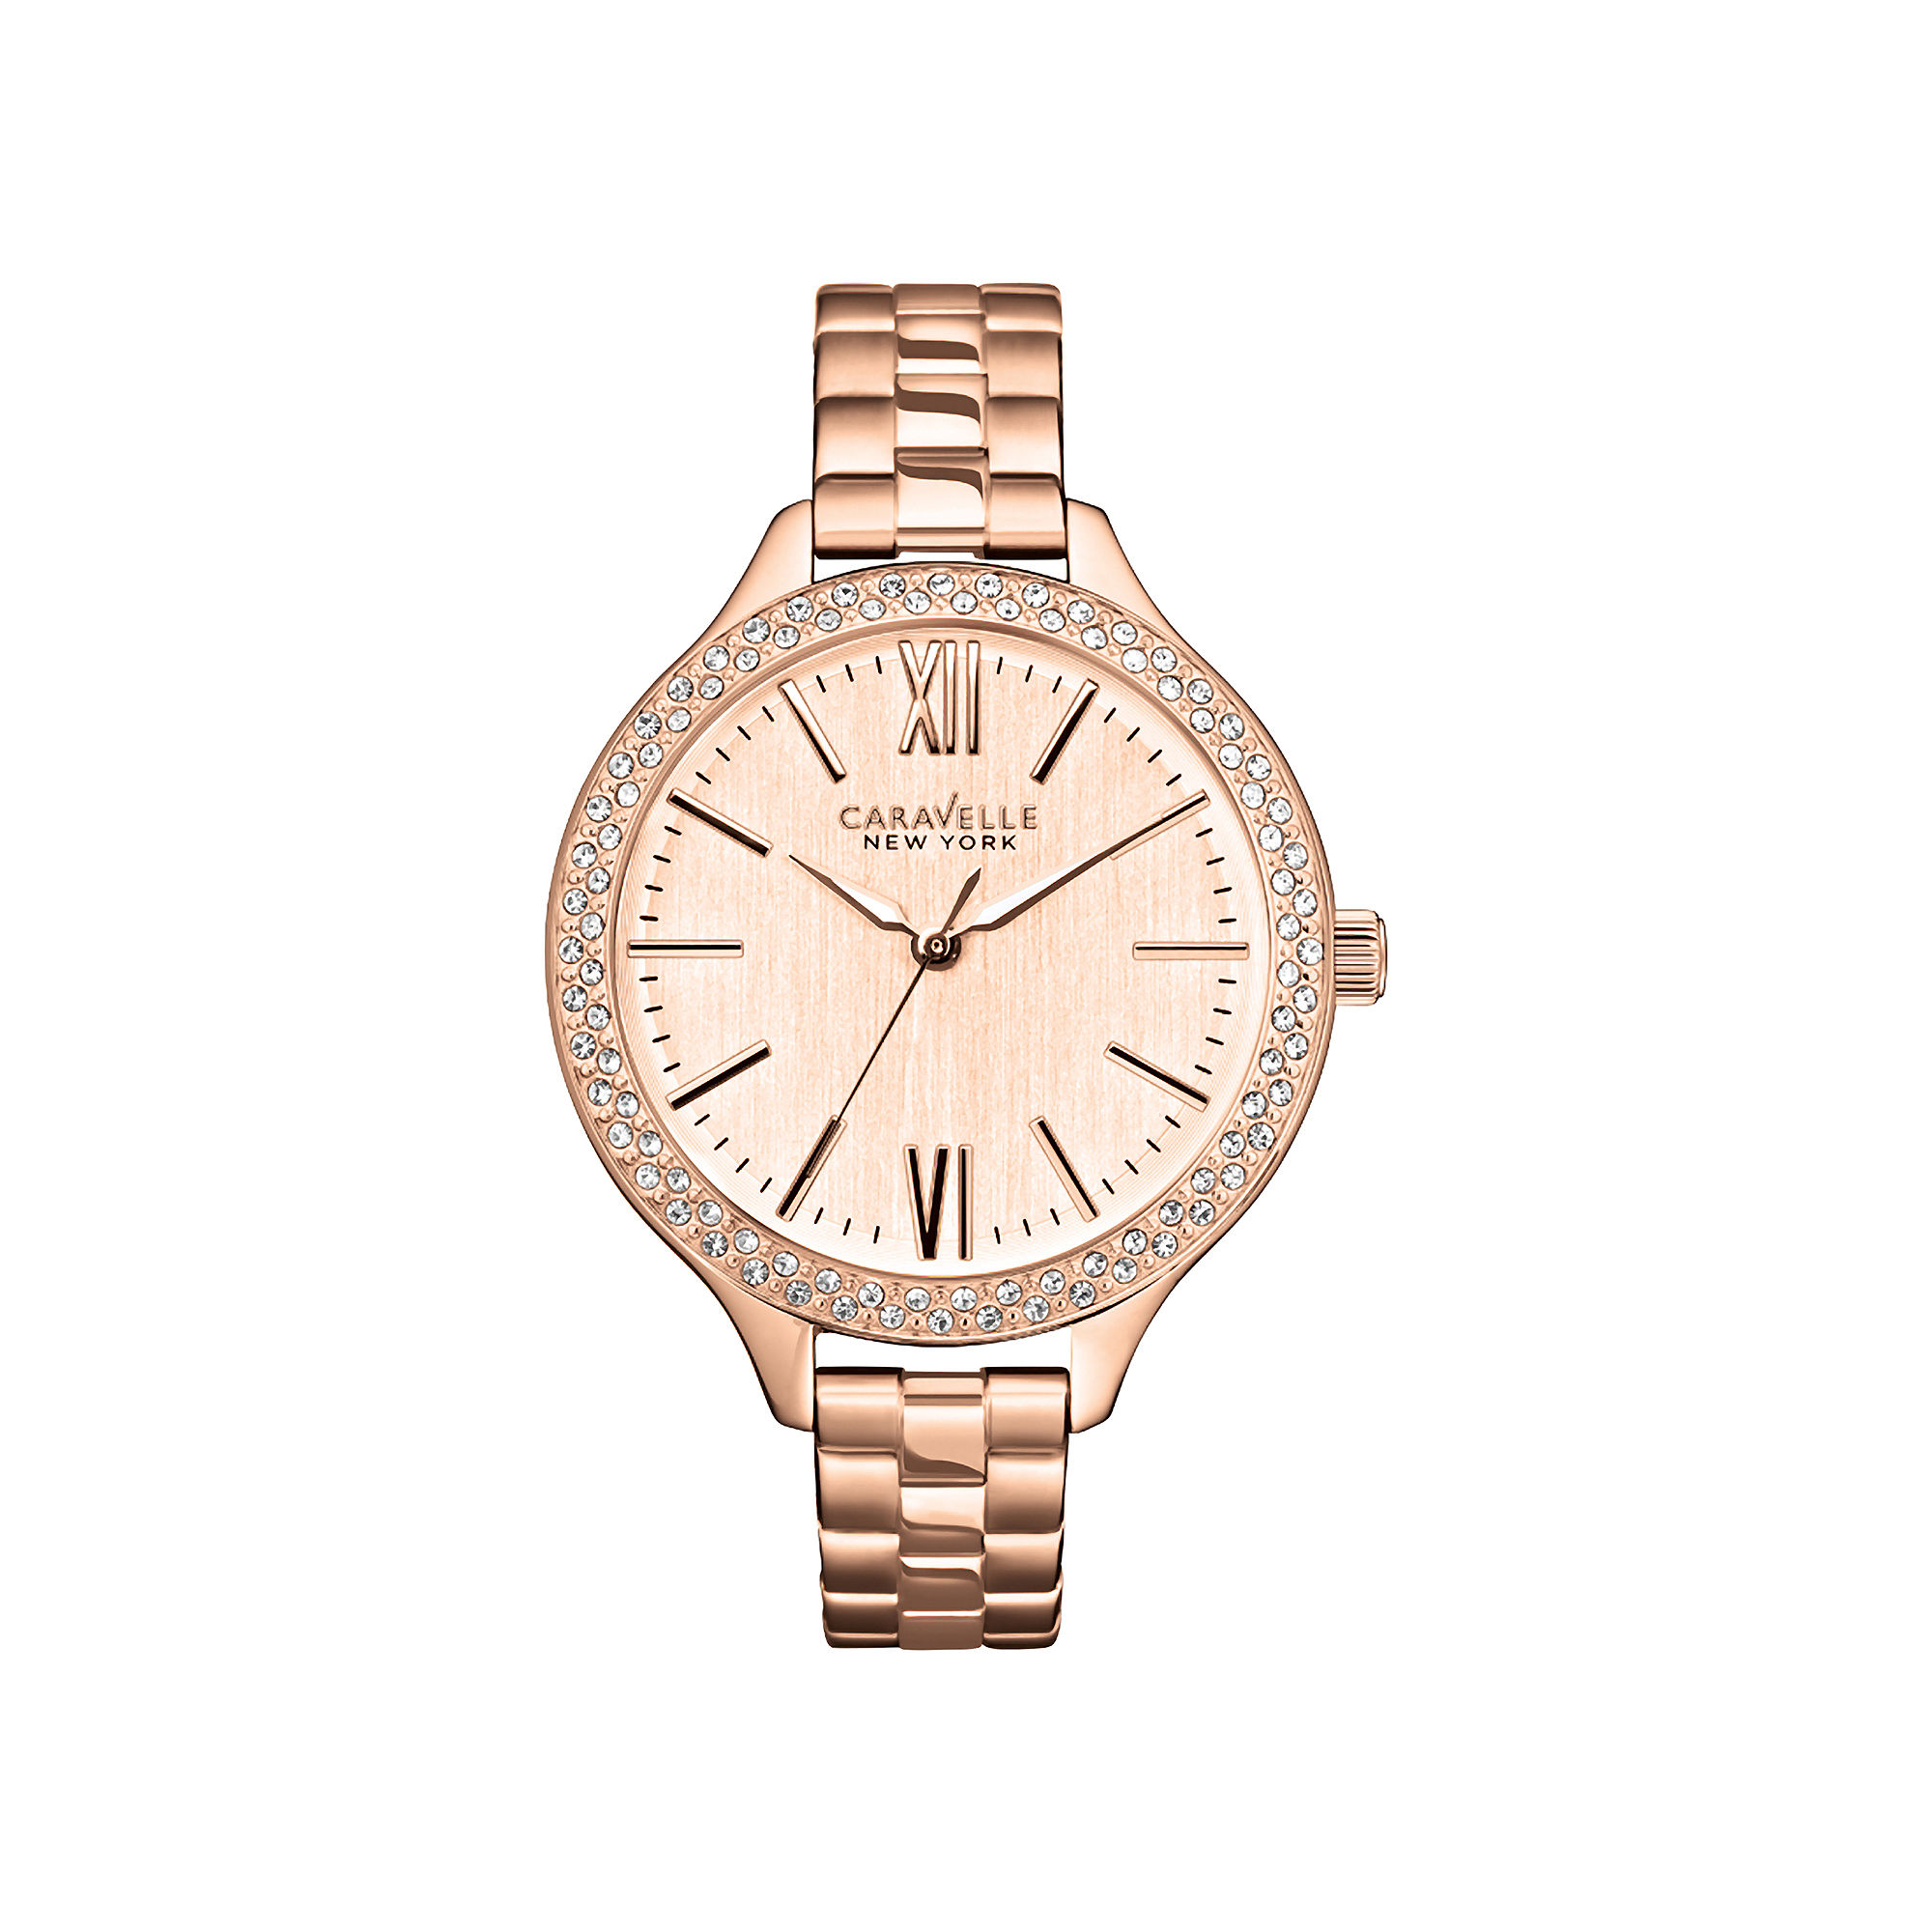 Caravelle New York Womens Rose-Tone Dial & Bracelet Watch 44L125